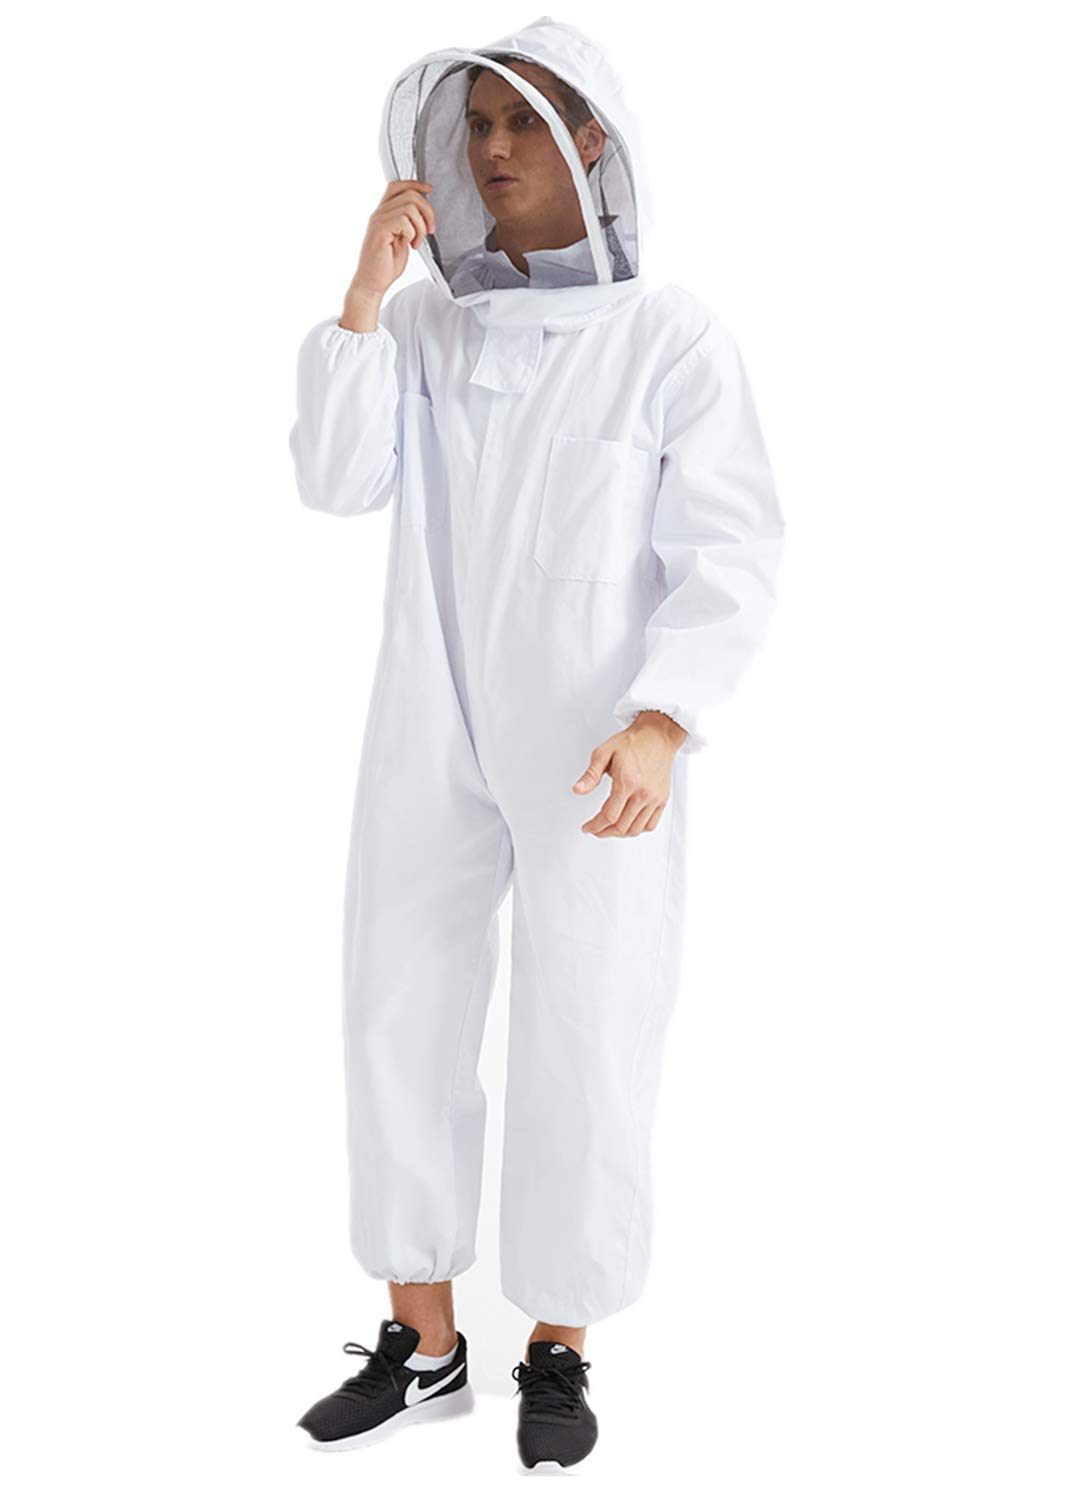 Professional Cotton Full Body Beekeeping Bee Keeping Suit W//Veil Hood Protect A+